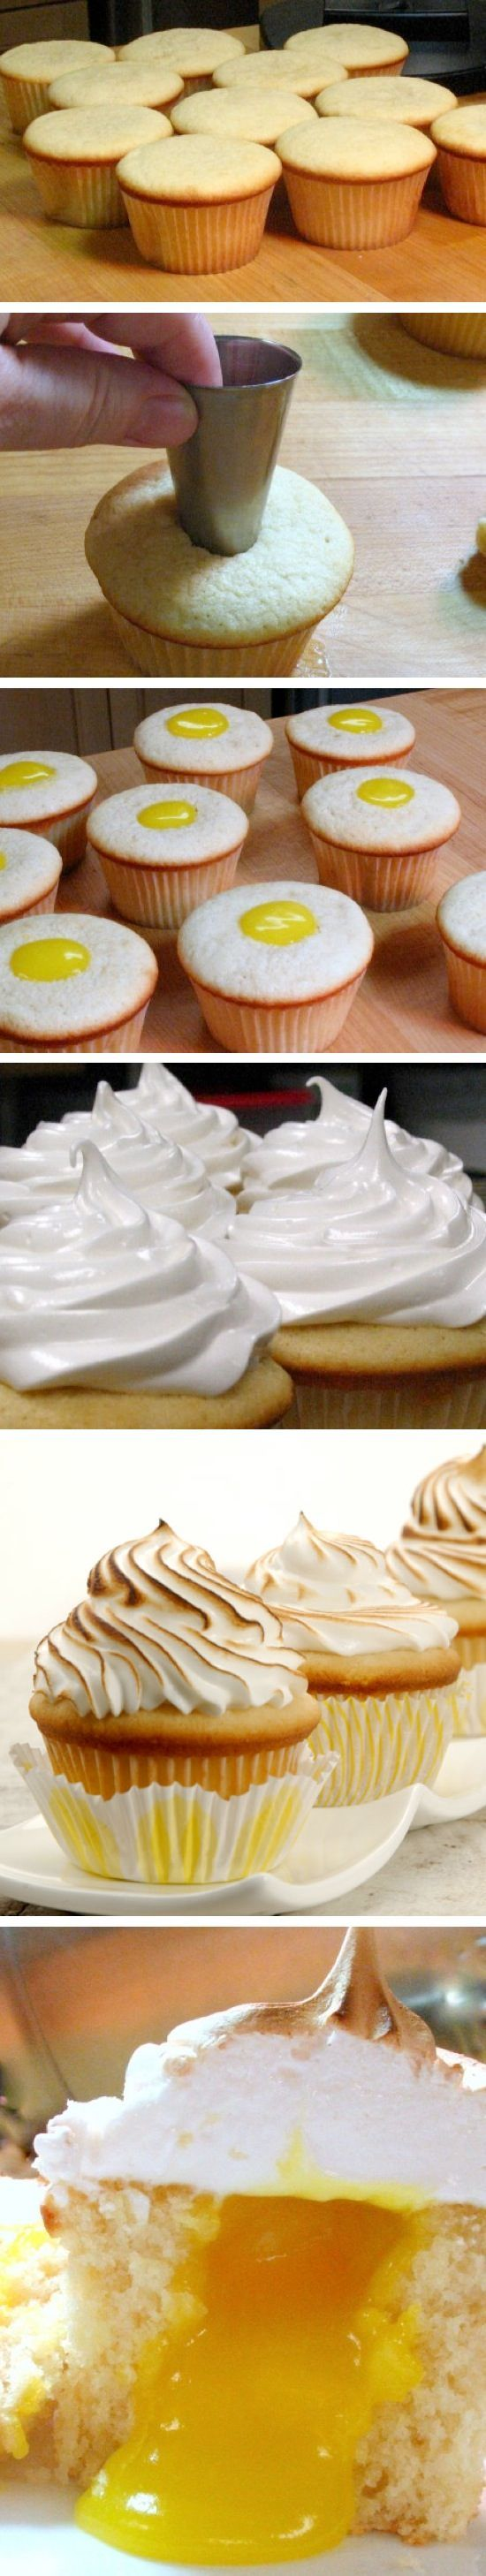 Lemon Meringue Cupcakes | Recipe By Photo